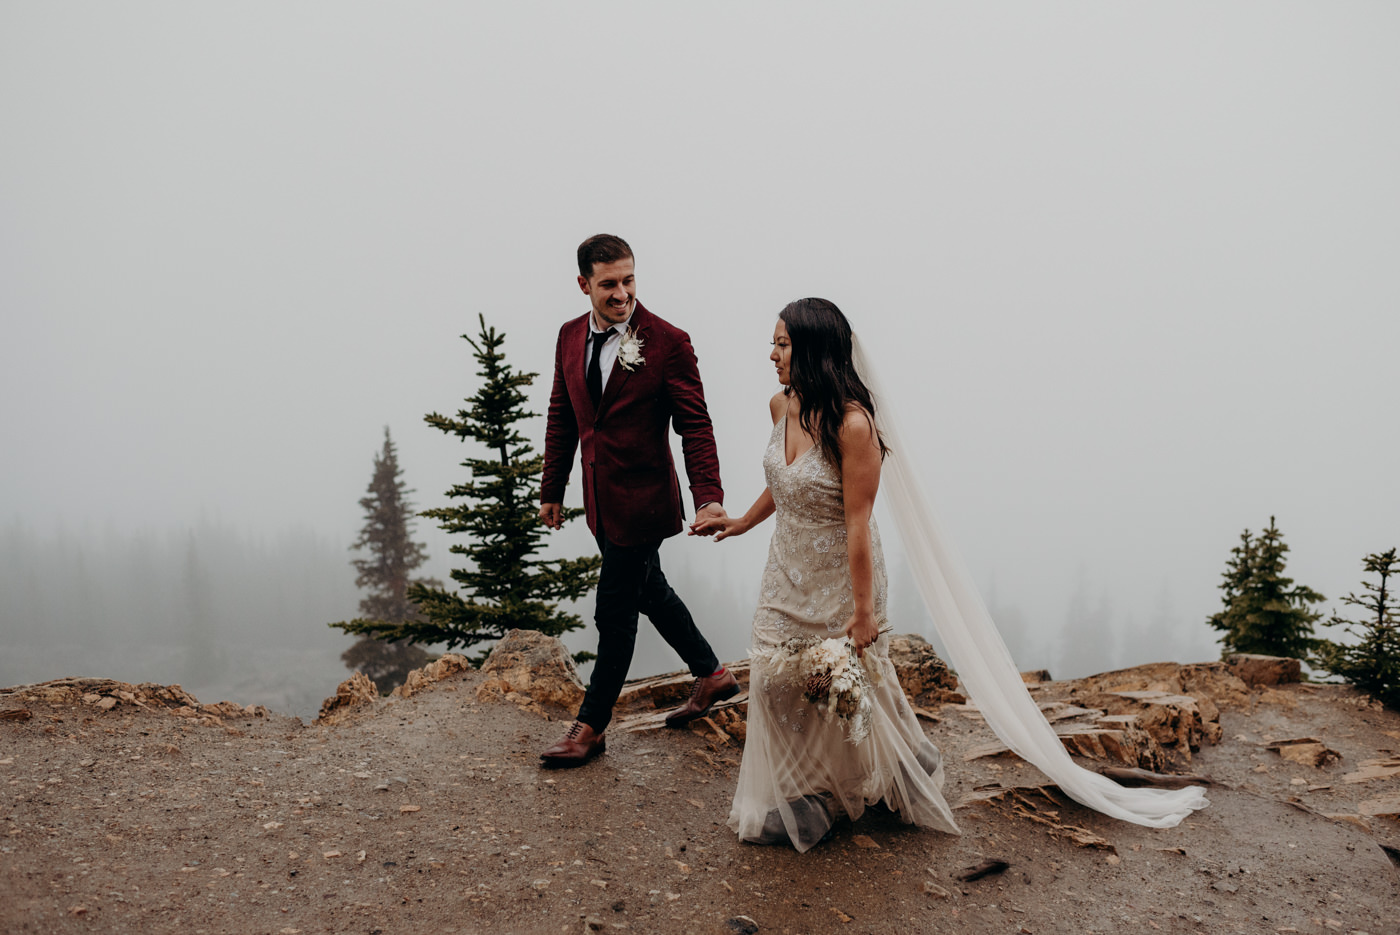 adventurous elopement at Banff National Park, bride and groom walking in the rain